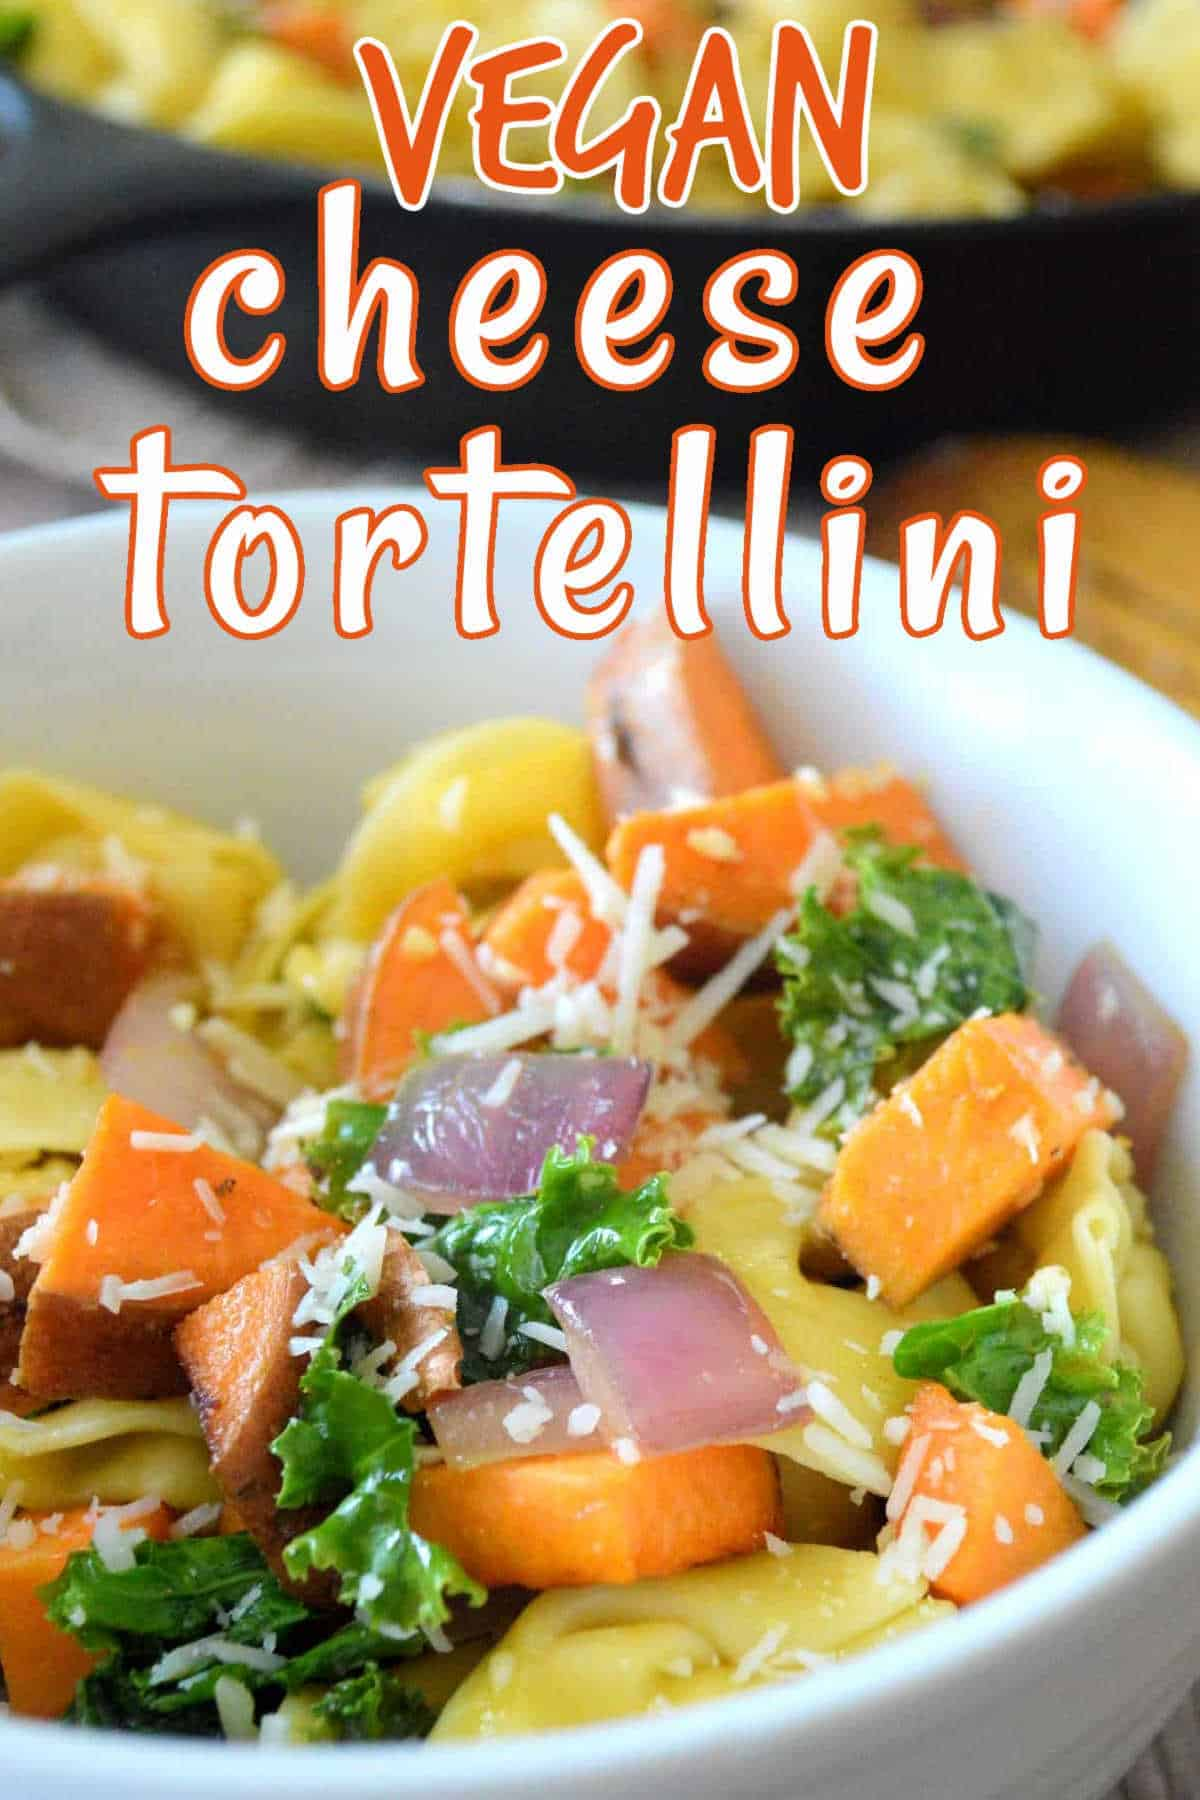 Vegan cheese tortellini pasta with text above.